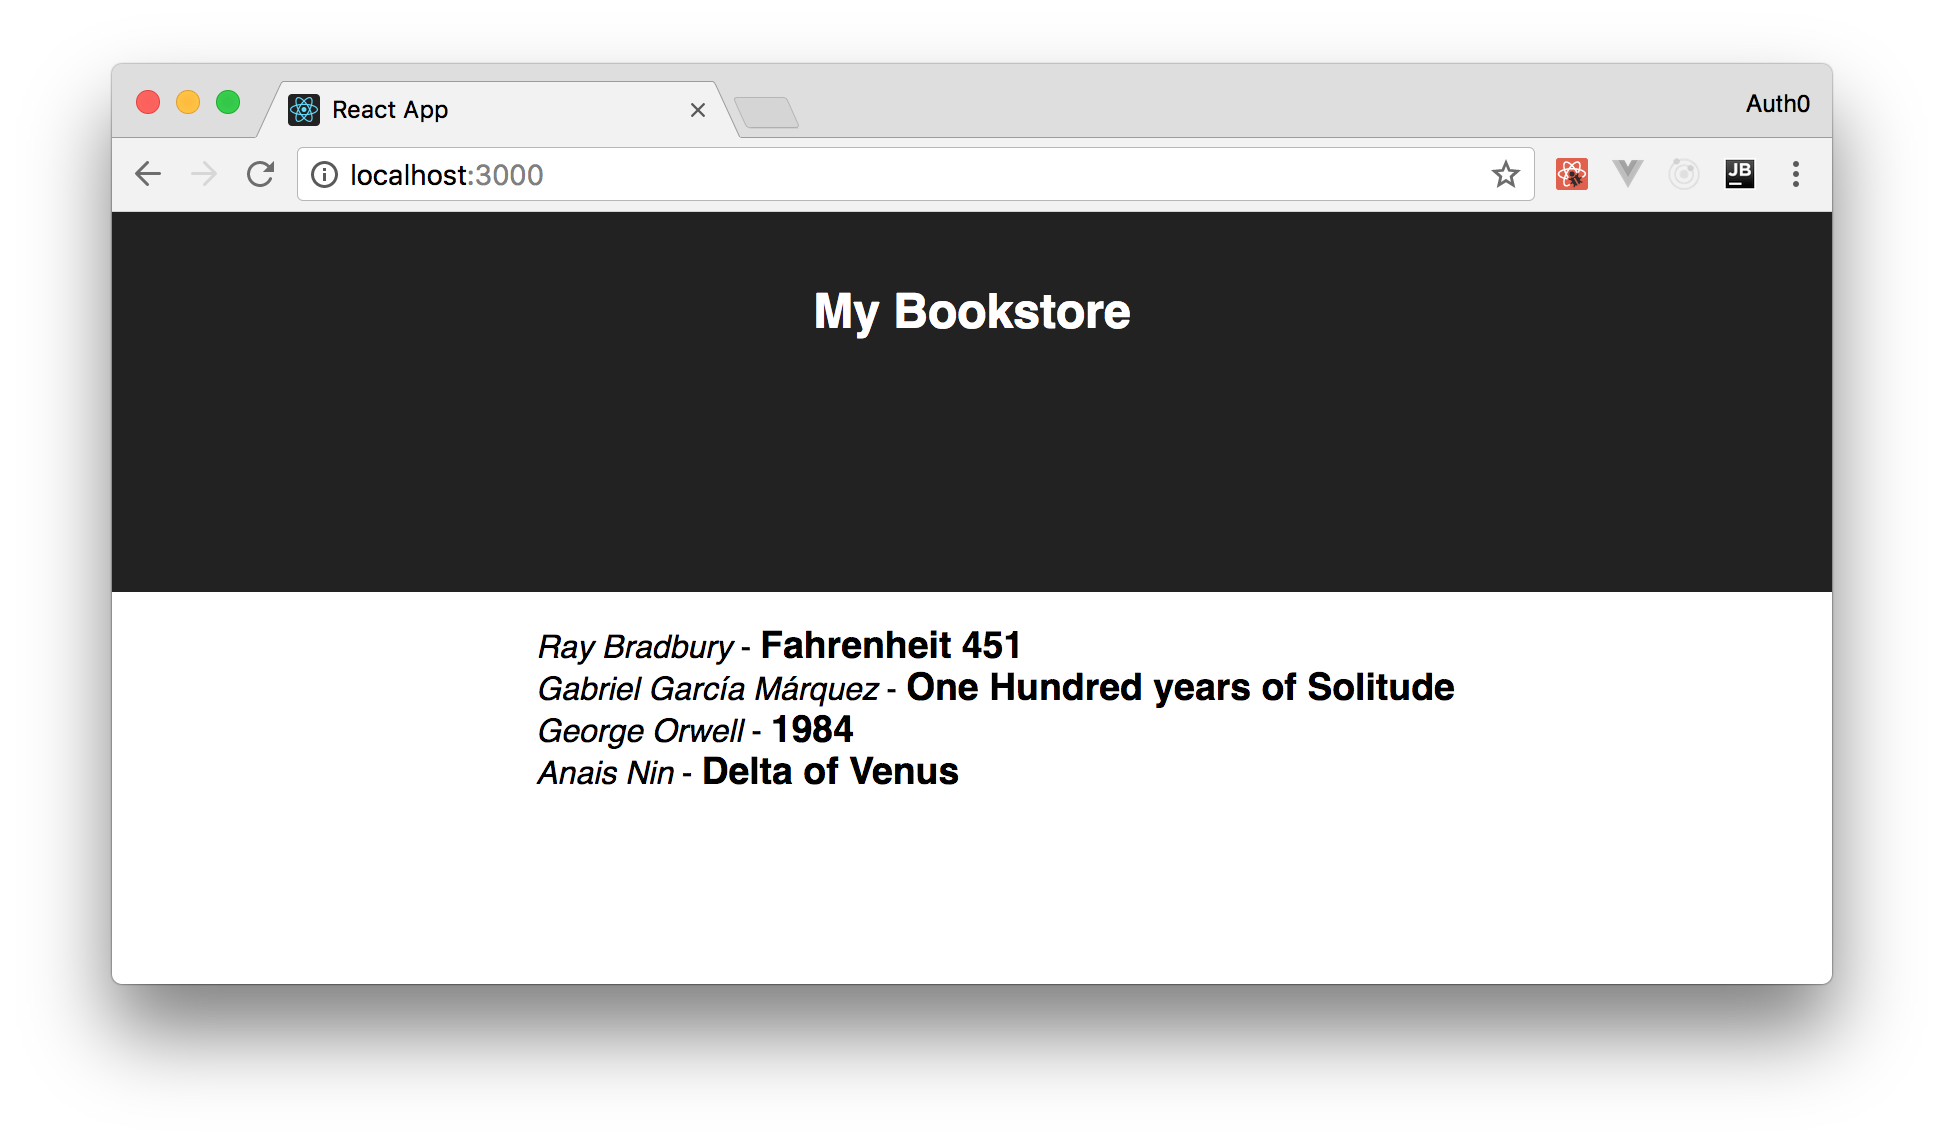 Showing the book list in the React app integrated with ASP.NET Core 2.0